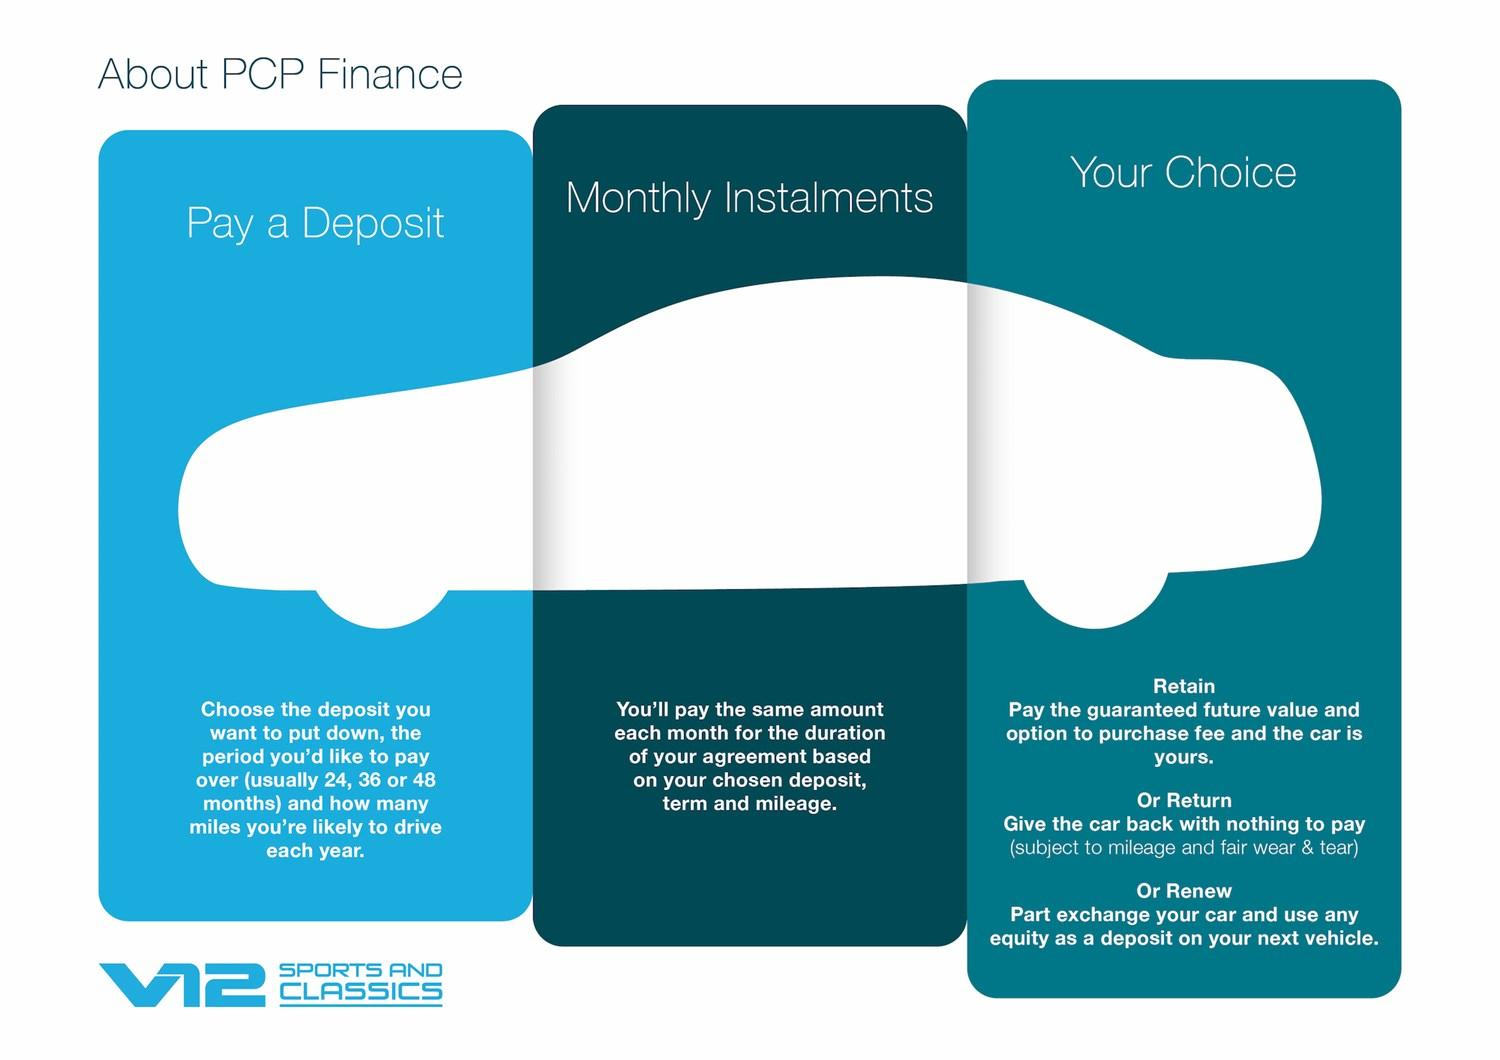 About PCP Finance